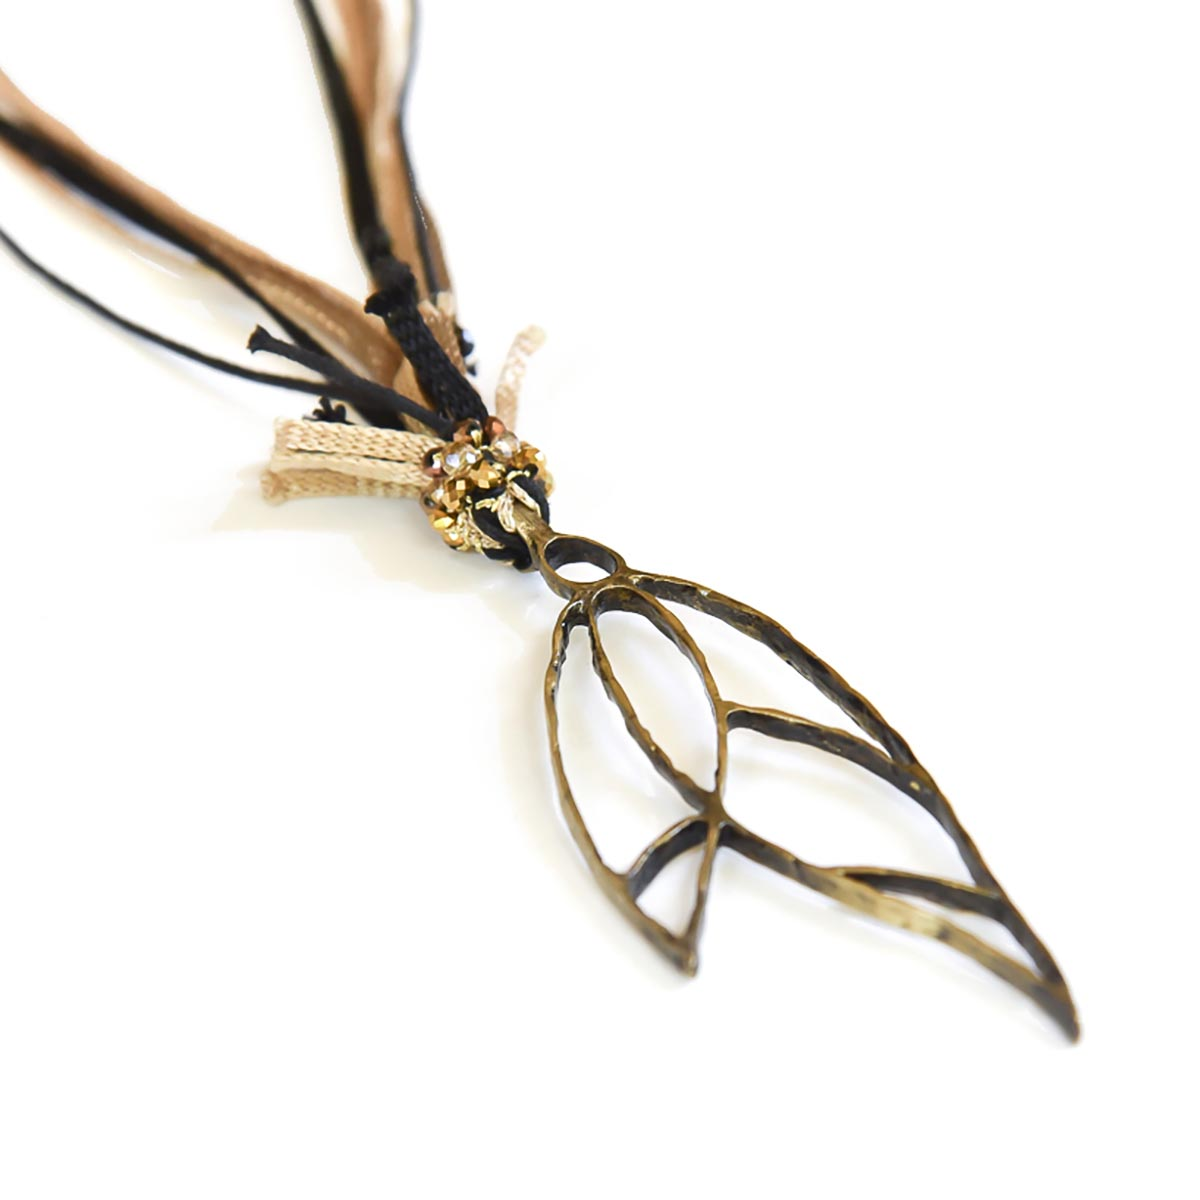 Neckklace with bronze handmade charm and silk ribbons. Designed and made for Bead A Boo jewelry by Katerina Glinou.